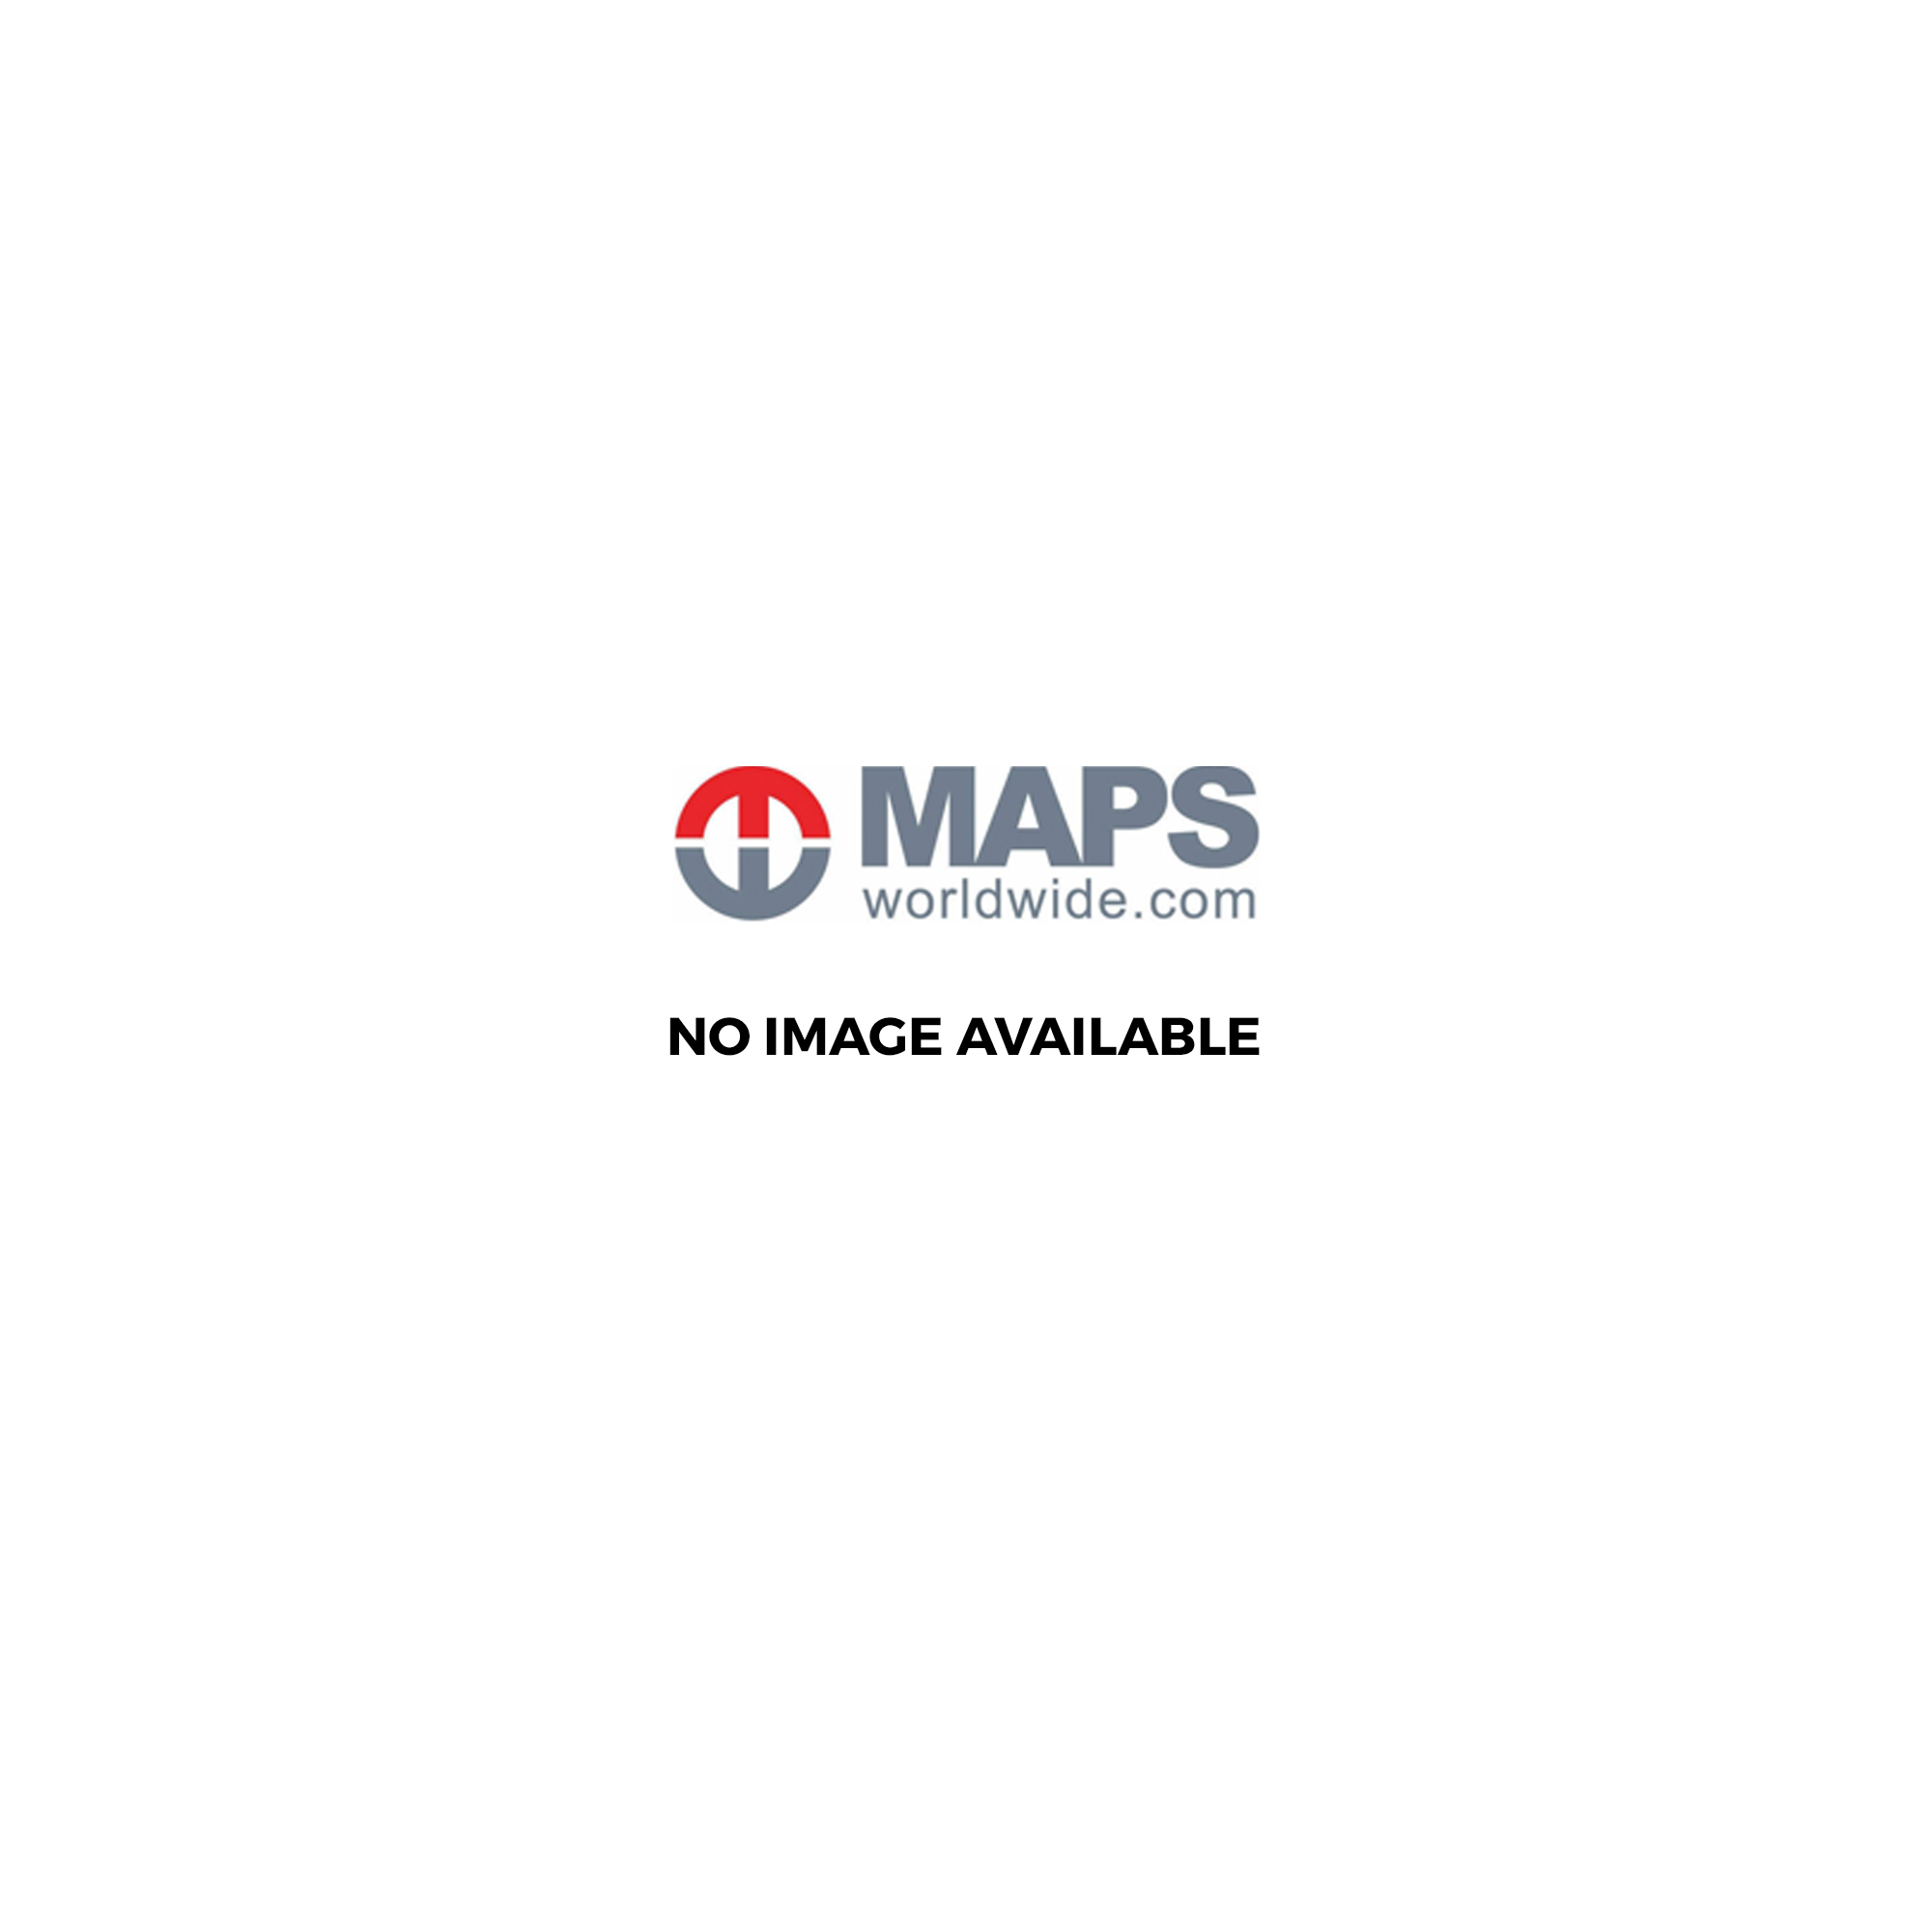 AA Road Atlas Big Road Atlas USA 2018 North America from Maps